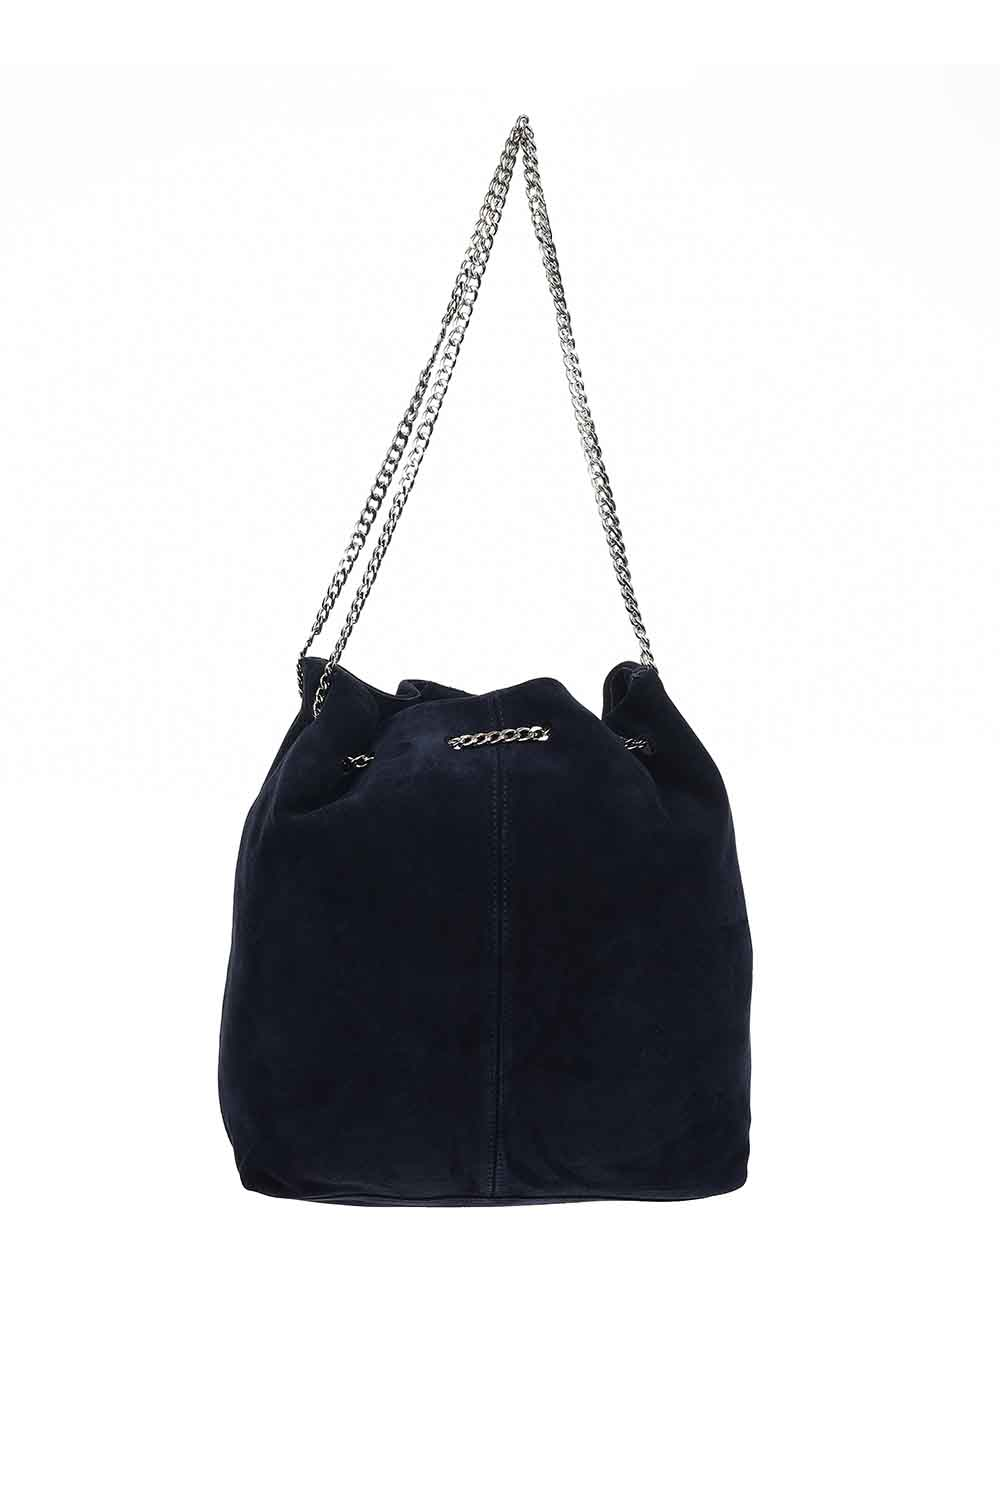 MIZALLE Suede Shoulder Bag (Navy Blue) (1)